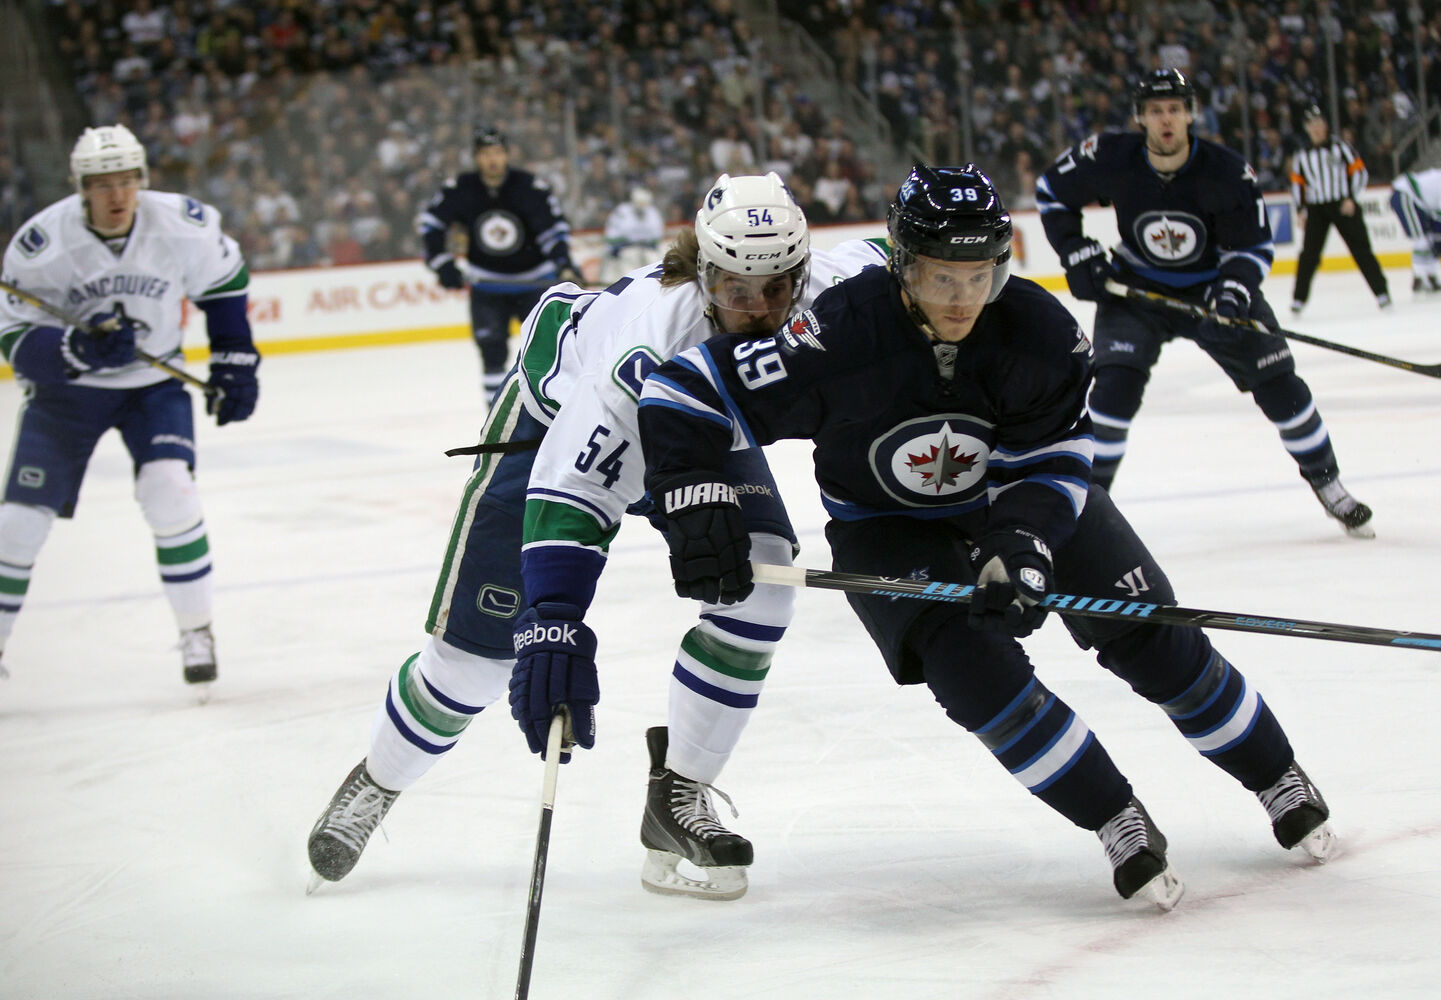 Winnipeg Jets' Tobias Endstrom and Vancouver Canucks' Kellan Lain run for the puck during the first period of Friday's game at Winnipeg's MTS Centre.